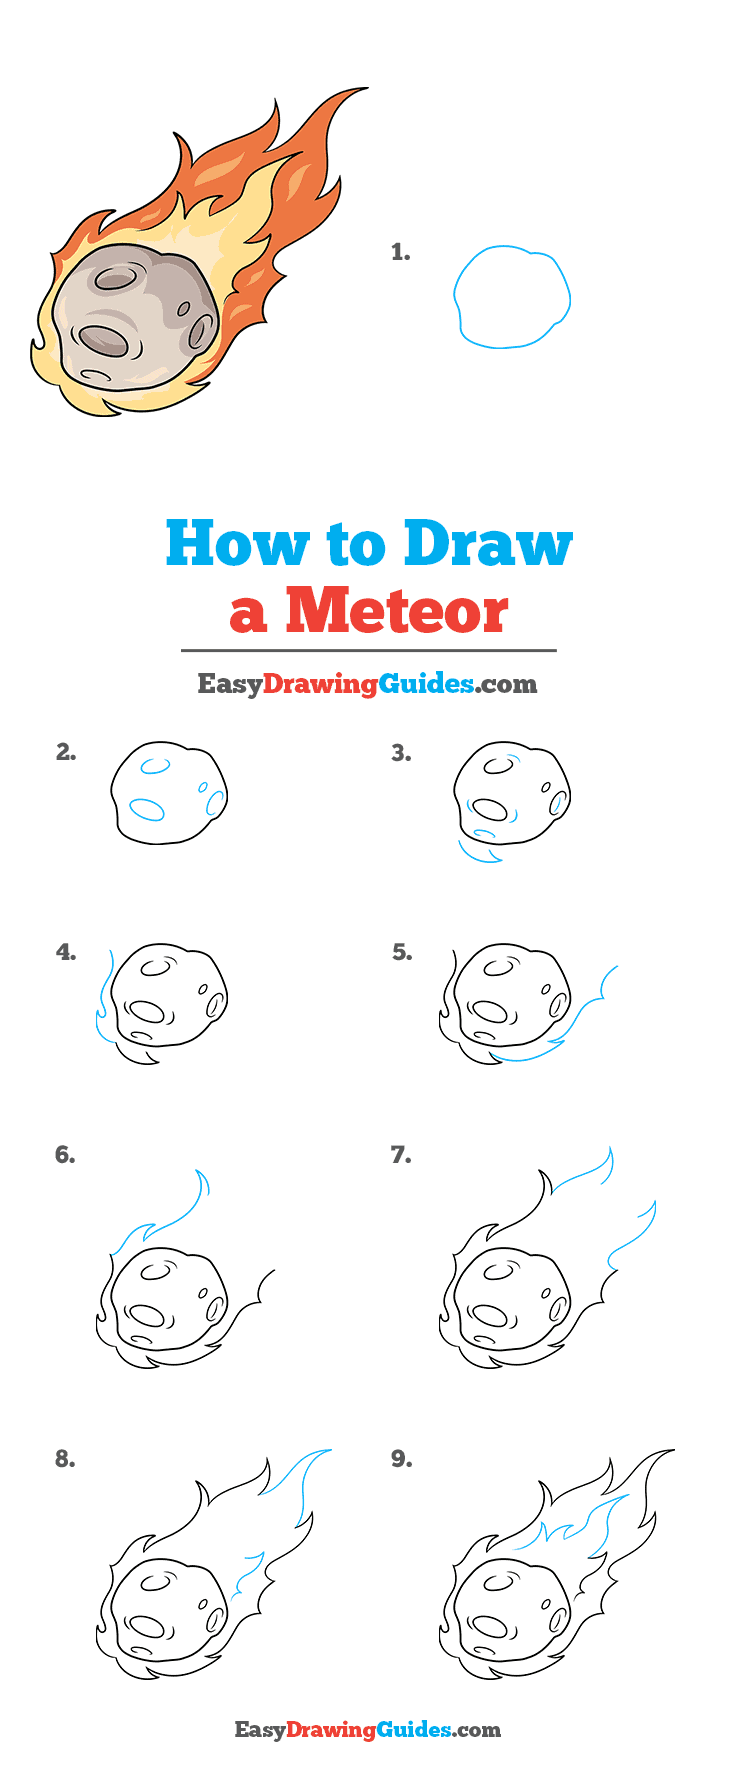 How to Draw a Meteor Step by Step Tutorial Image